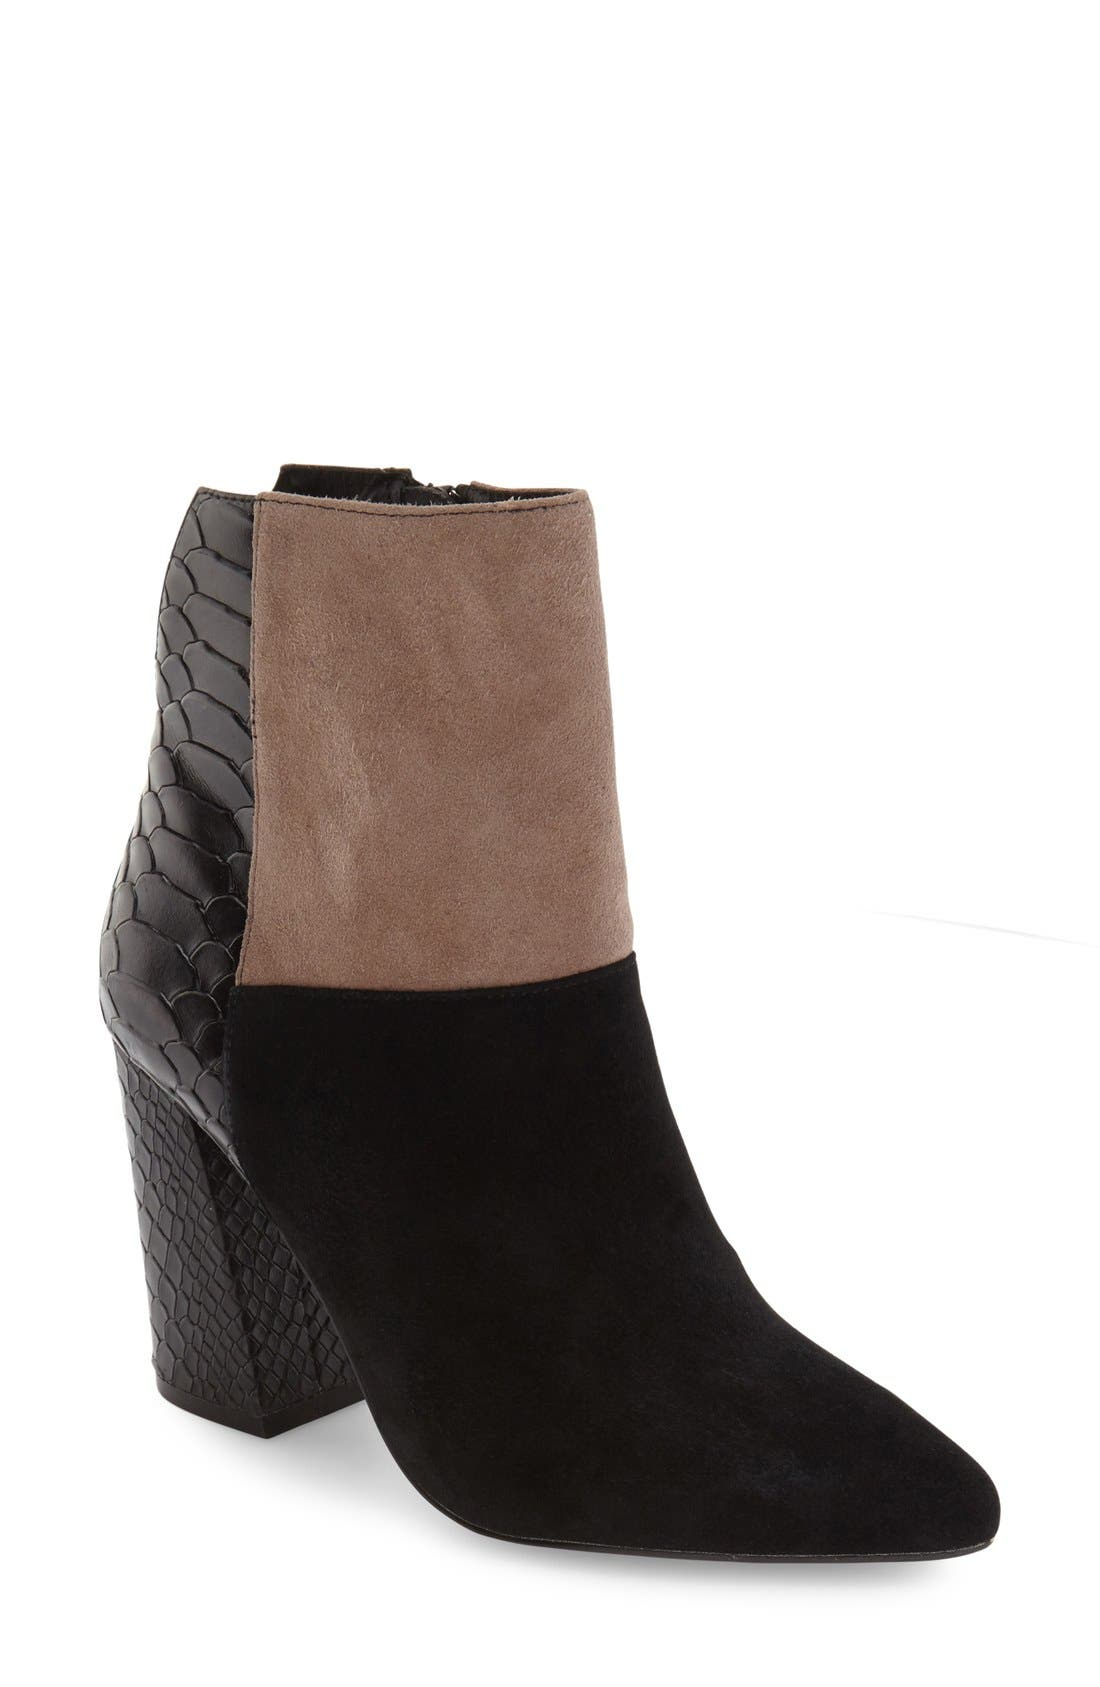 'Santorini' Colorblock Bootie,                         Main,                         color, 001